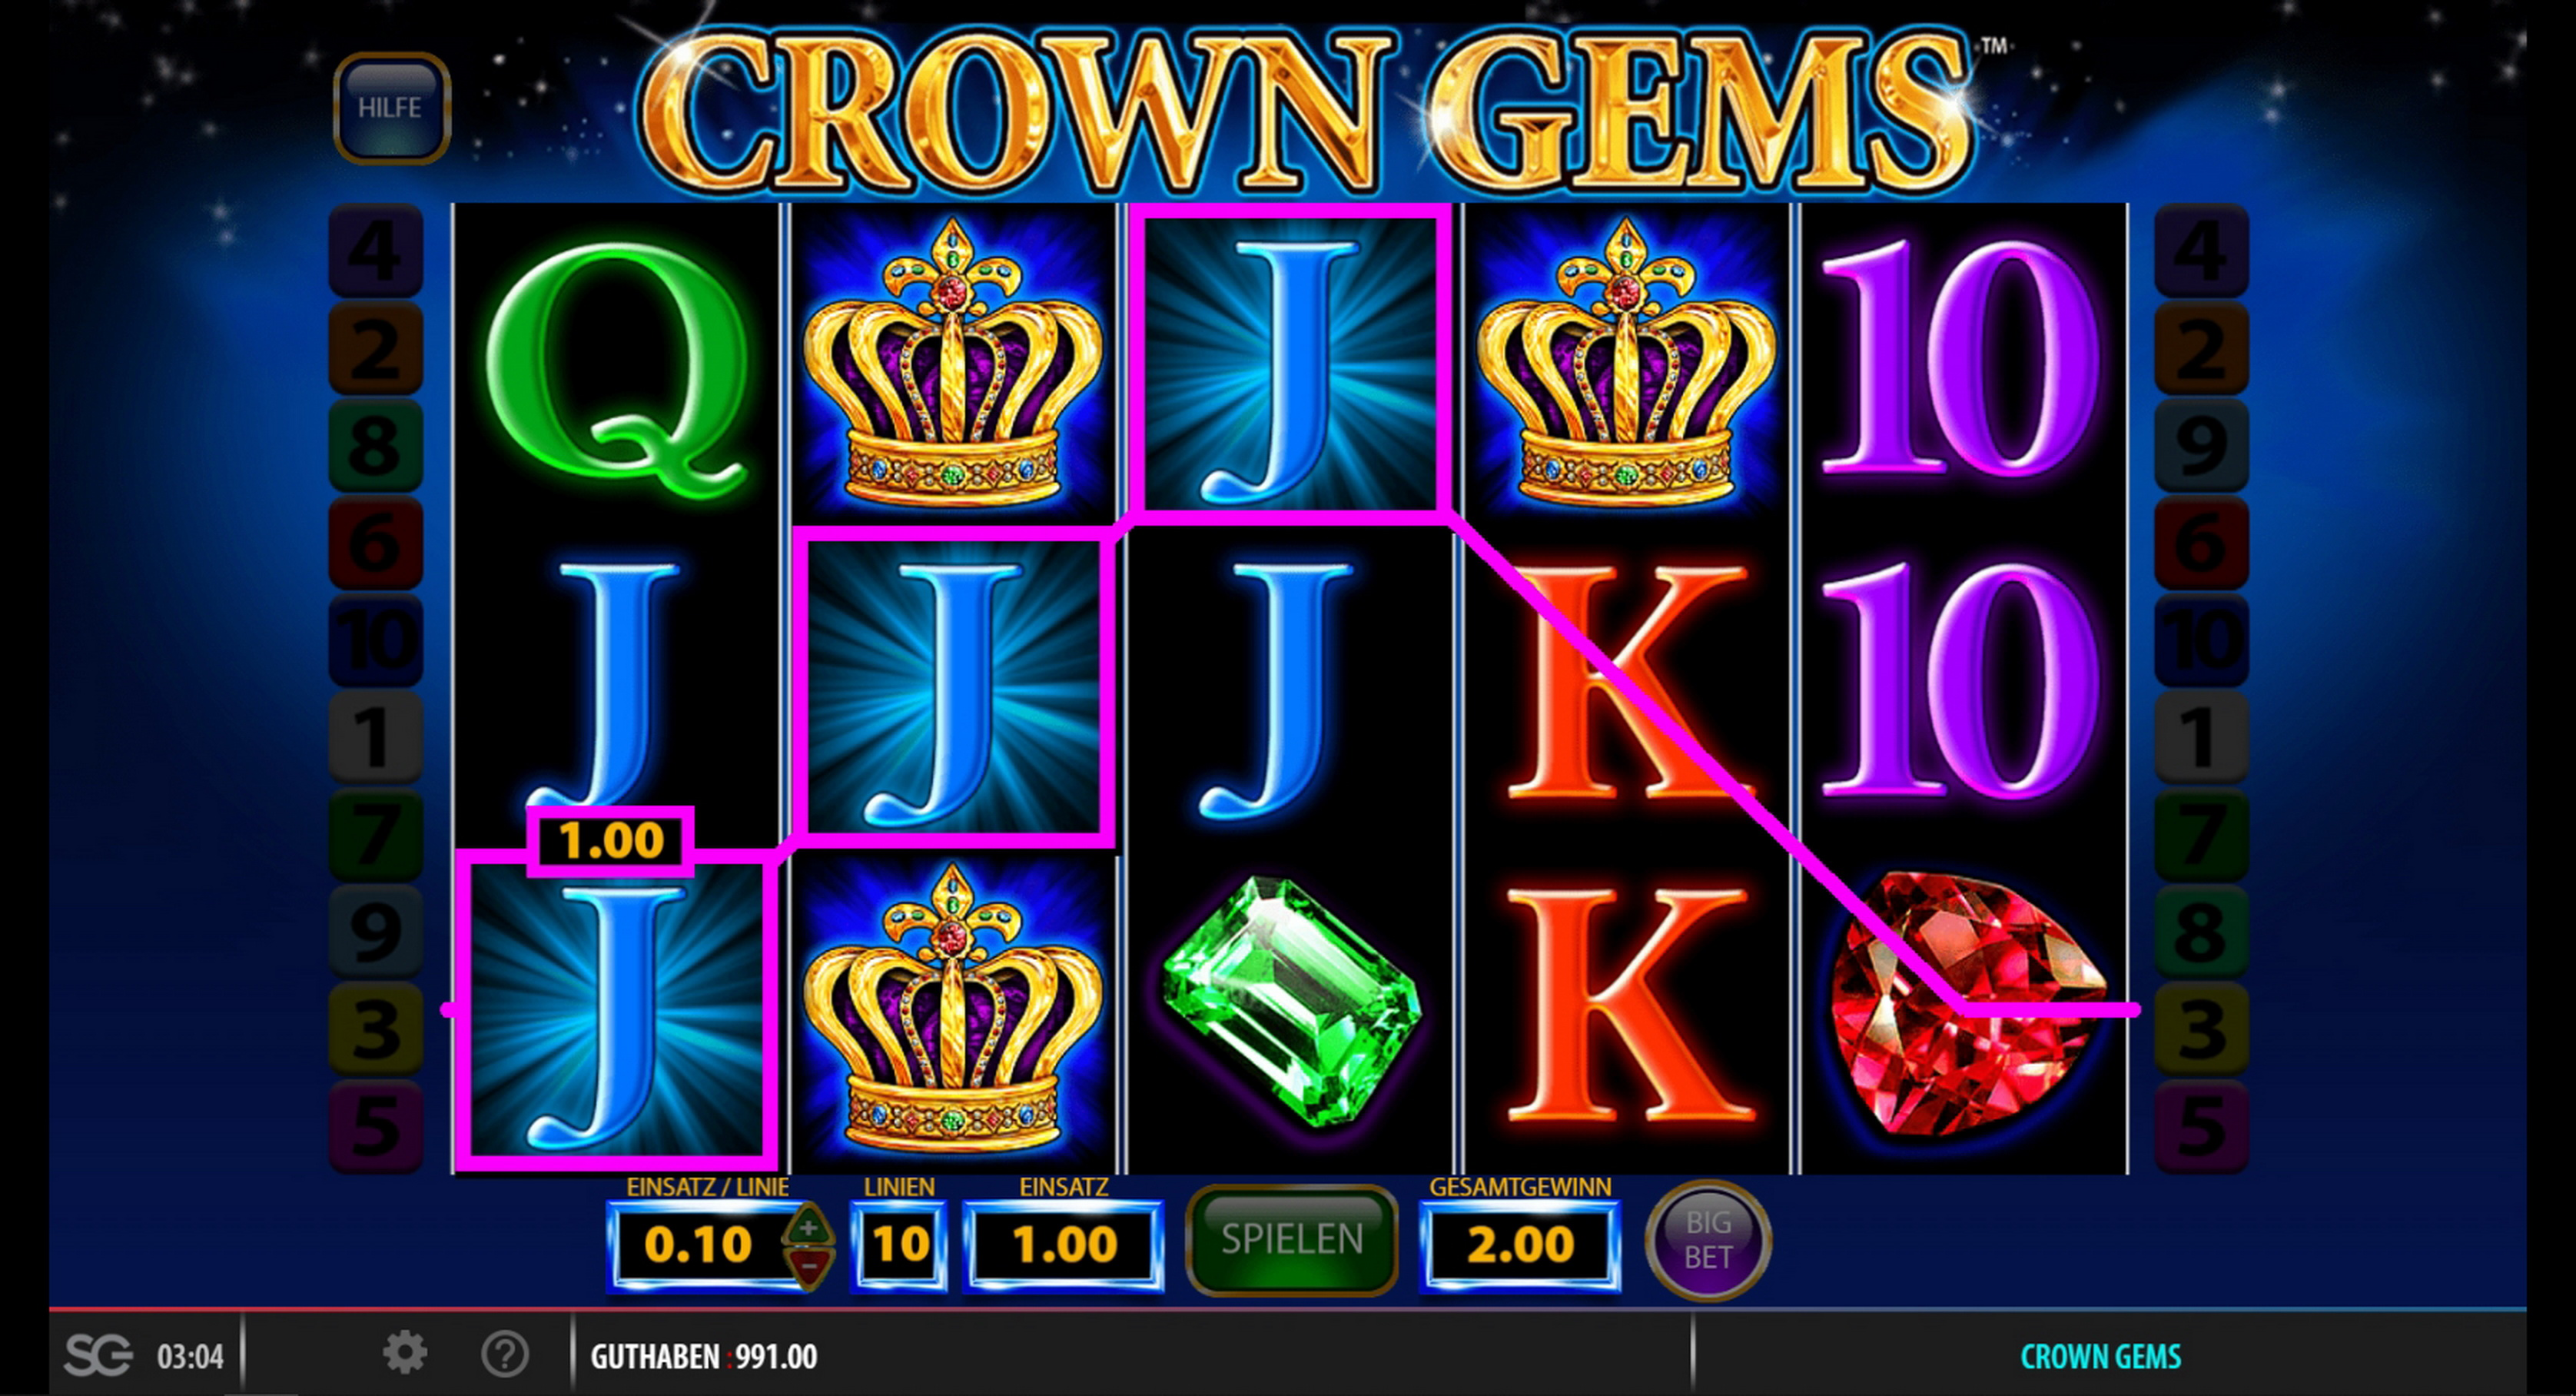 Win Money in Crown Gems Free Slot Game by Reel Time Gaming